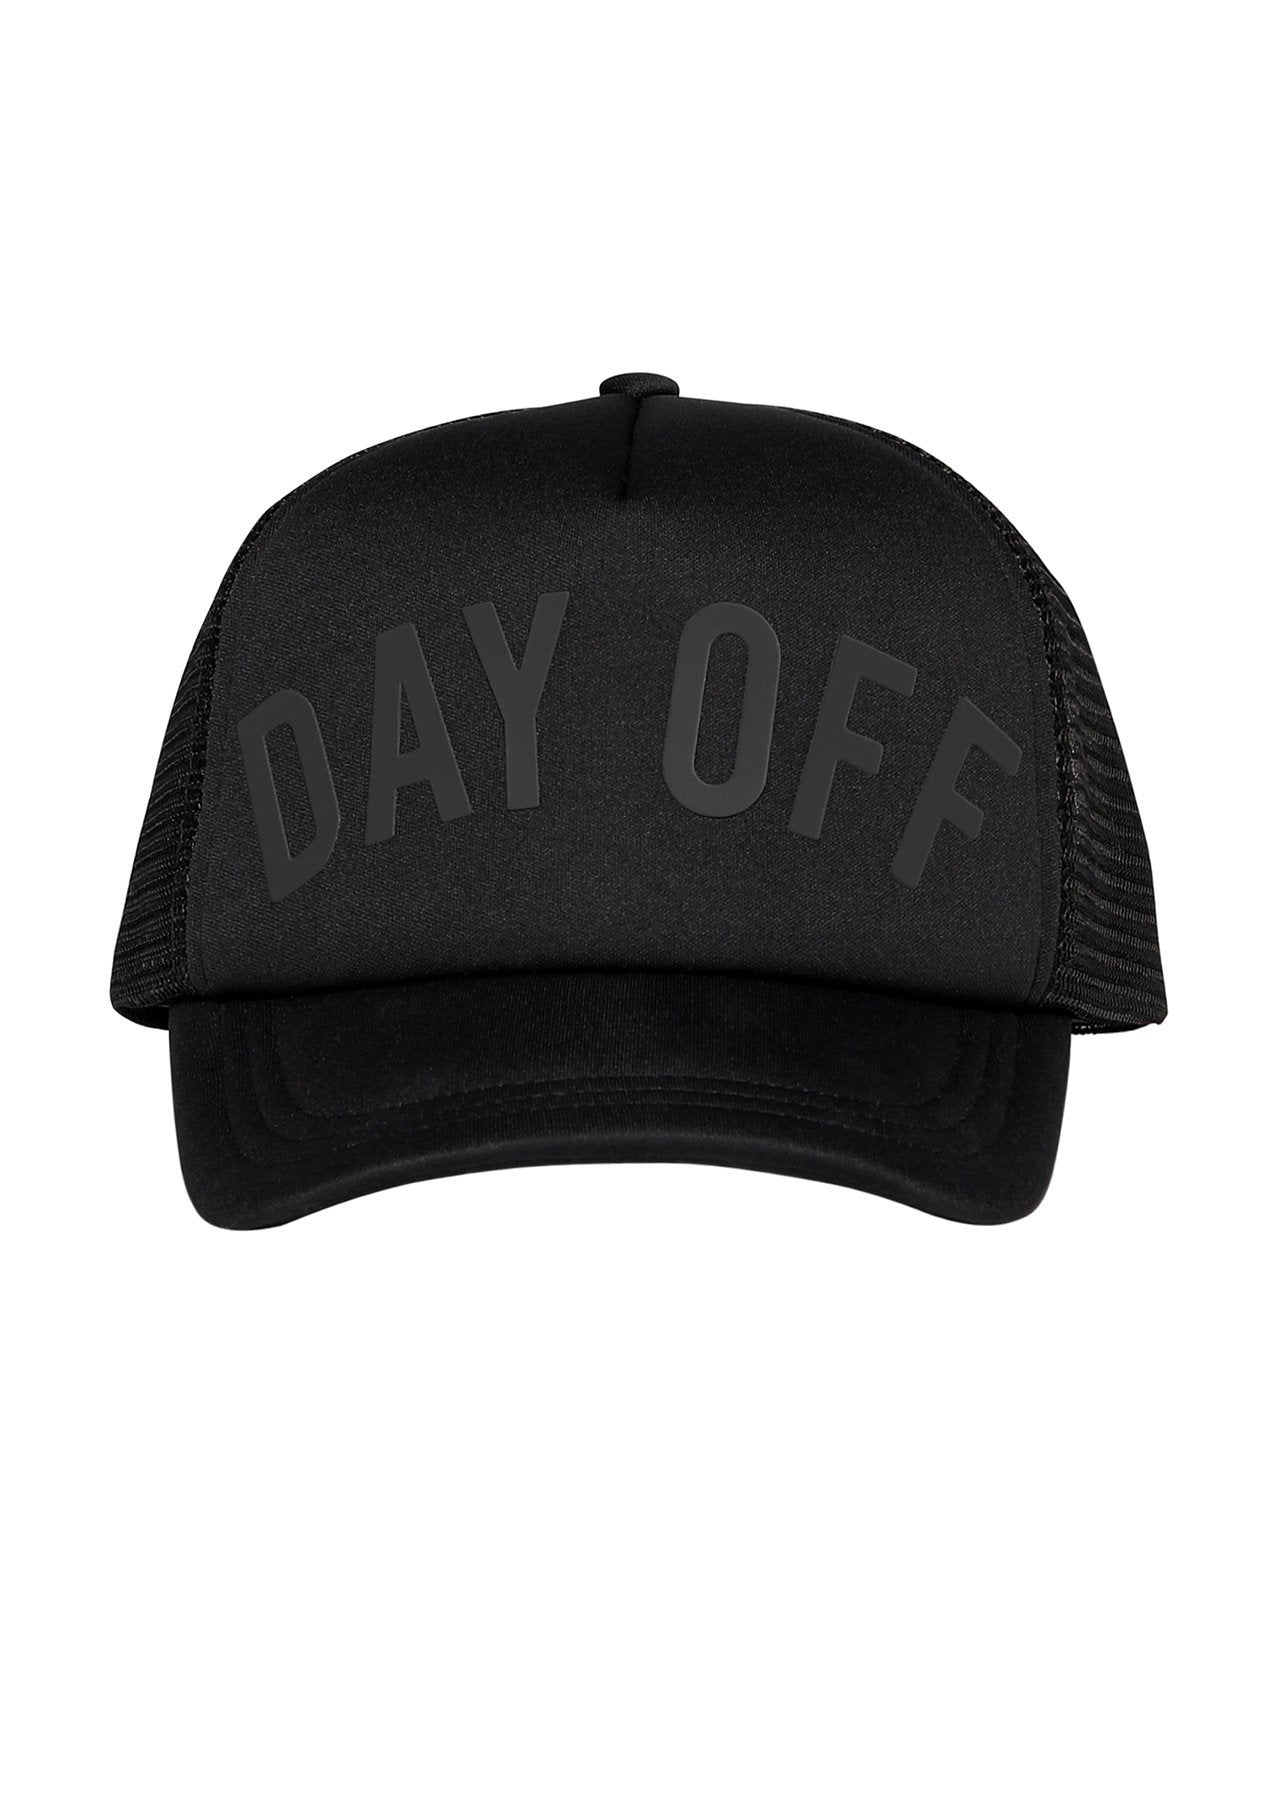 Day Off Cap-VISORS & CAPS-LORNA JANE-Believe Active